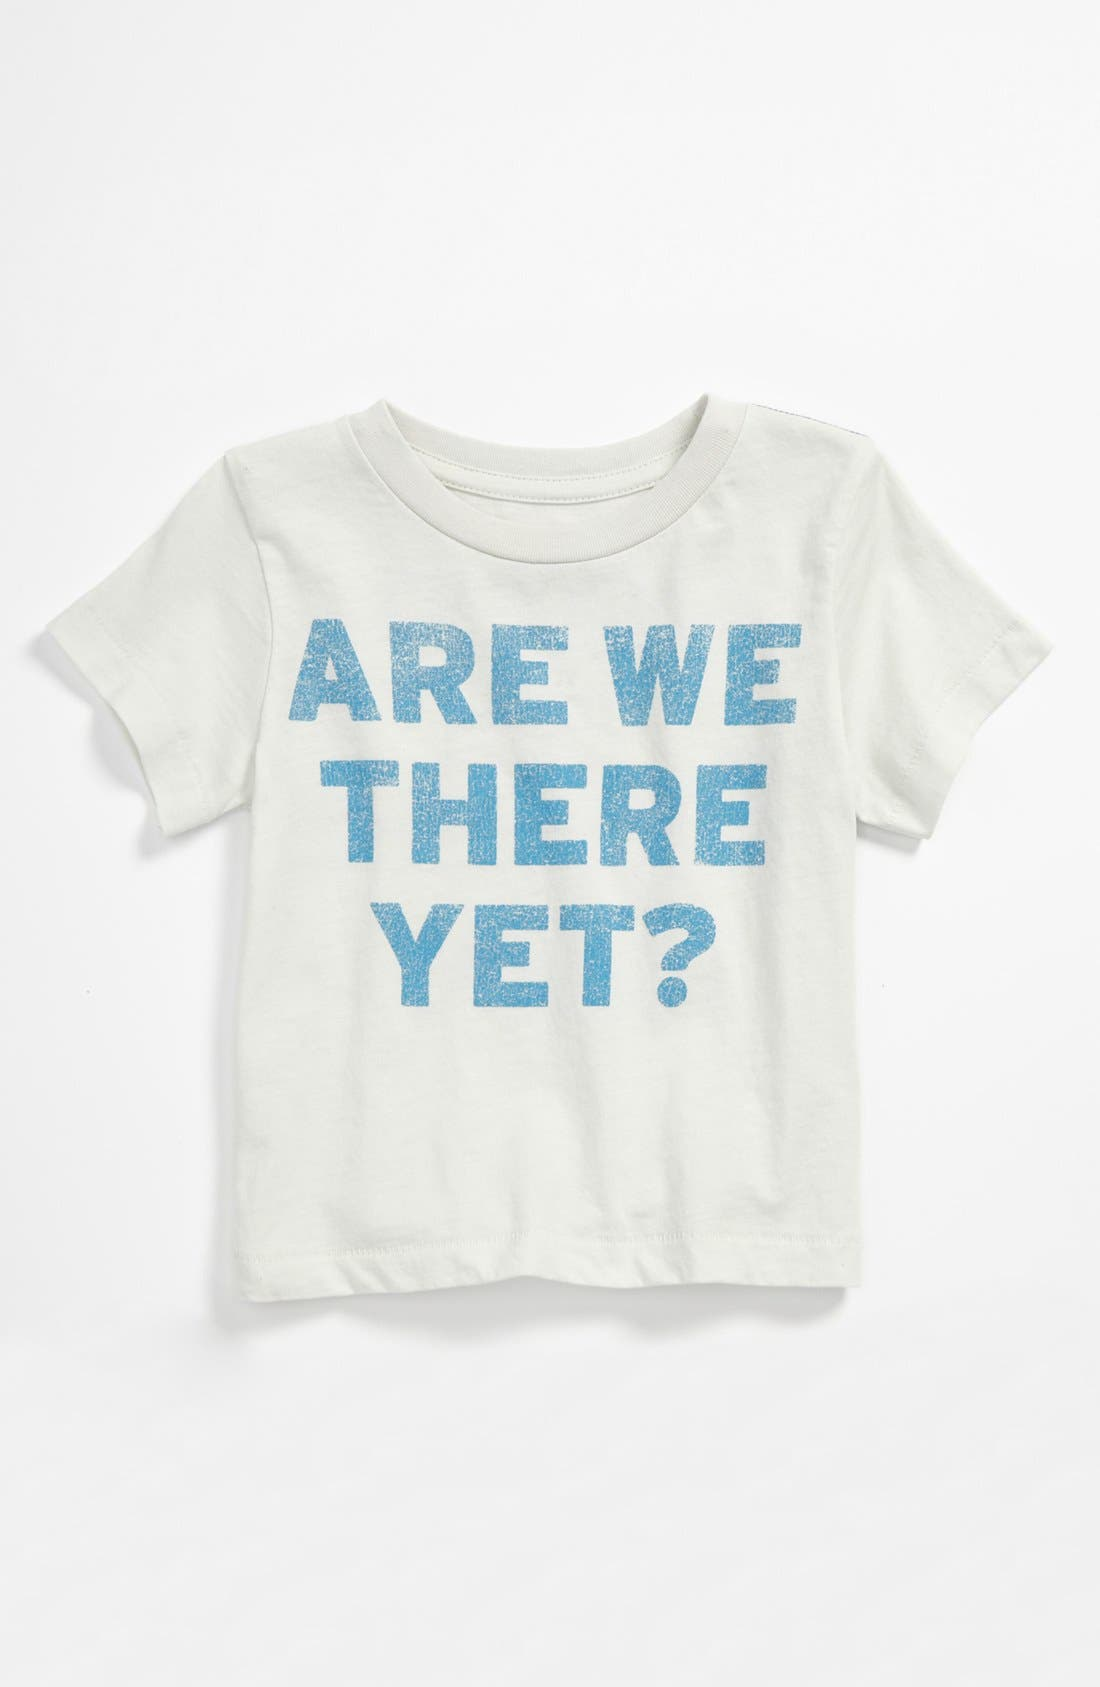 Alternate Image 1 Selected - Peek 'Road Trip' T-Shirt (Baby)